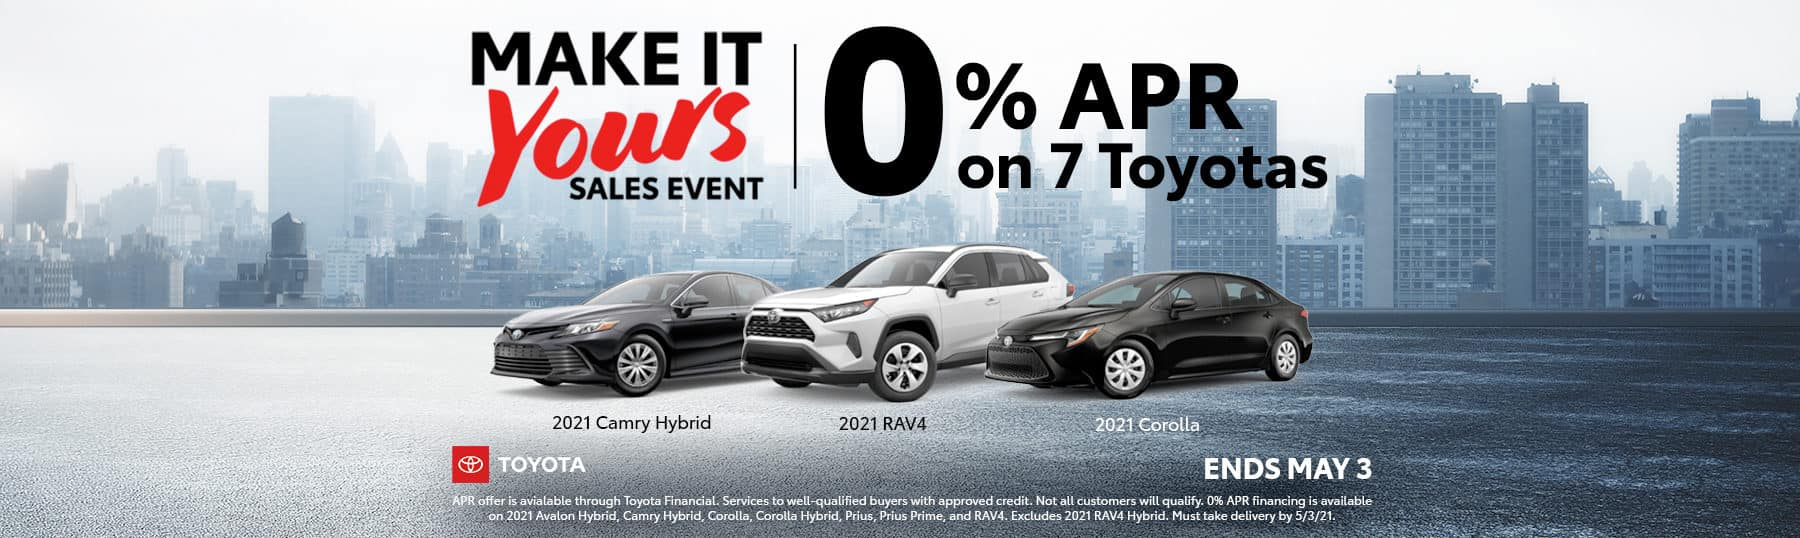 Toyota Make It Yours Sales Event